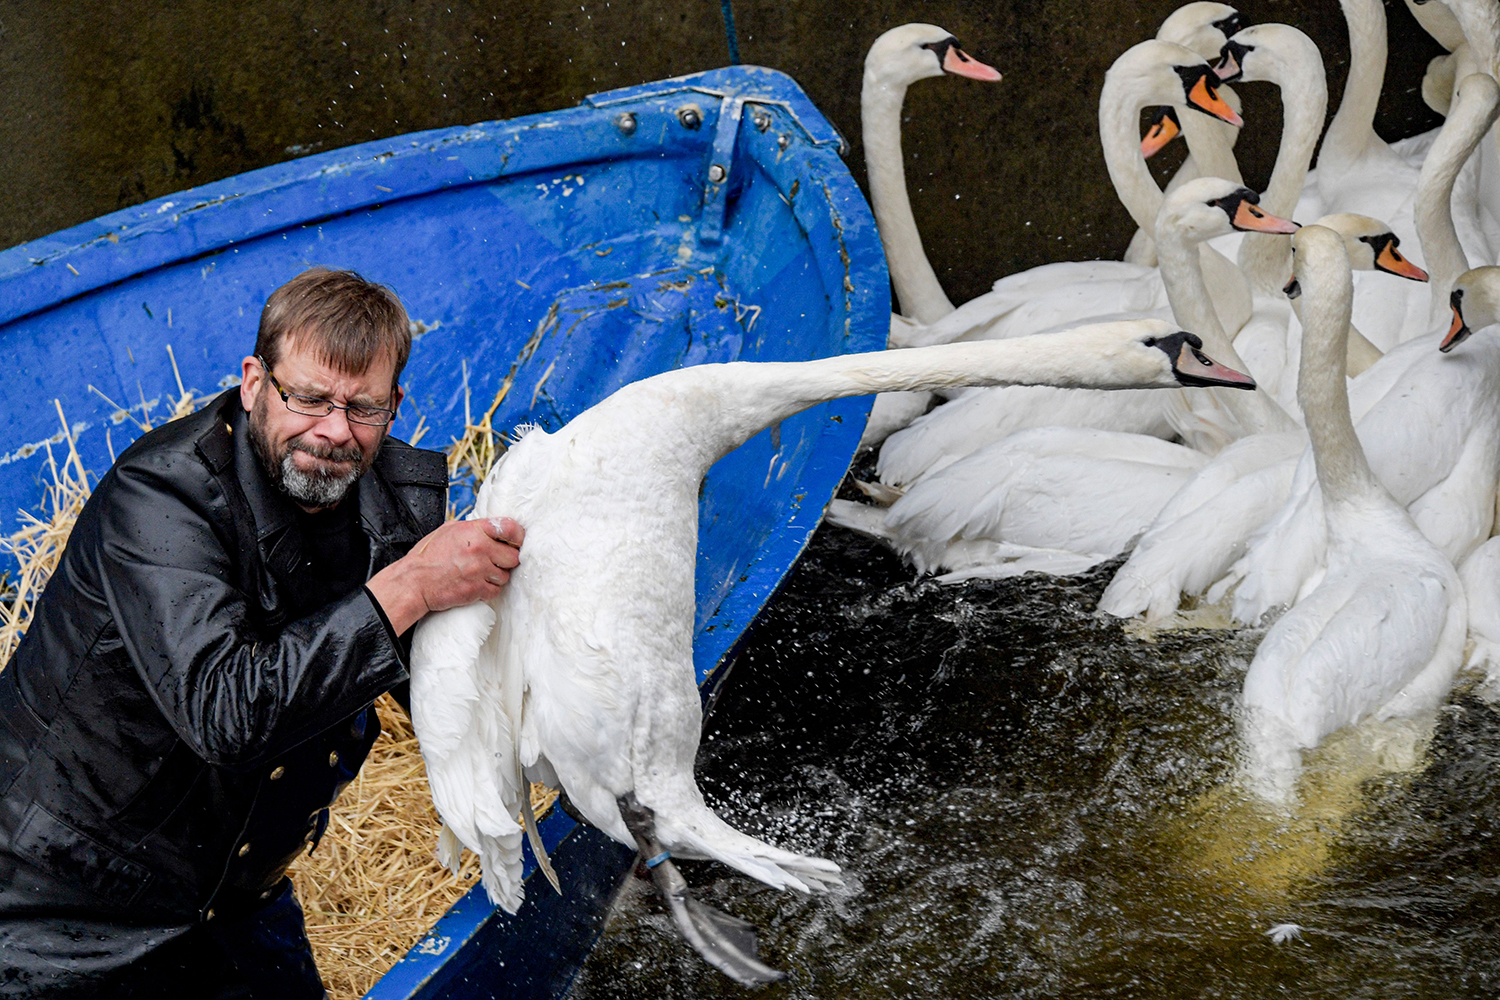 """Hamburg's """"Swan Father"""" Olaf Niess catches a swan as swans are rounded up on the river Alster in Hamburg, Germany, on Nov. 19. The swans are being moved to their ice-free winter home. AXEL HEIMKEN/dpa/AFP via Getty Images"""